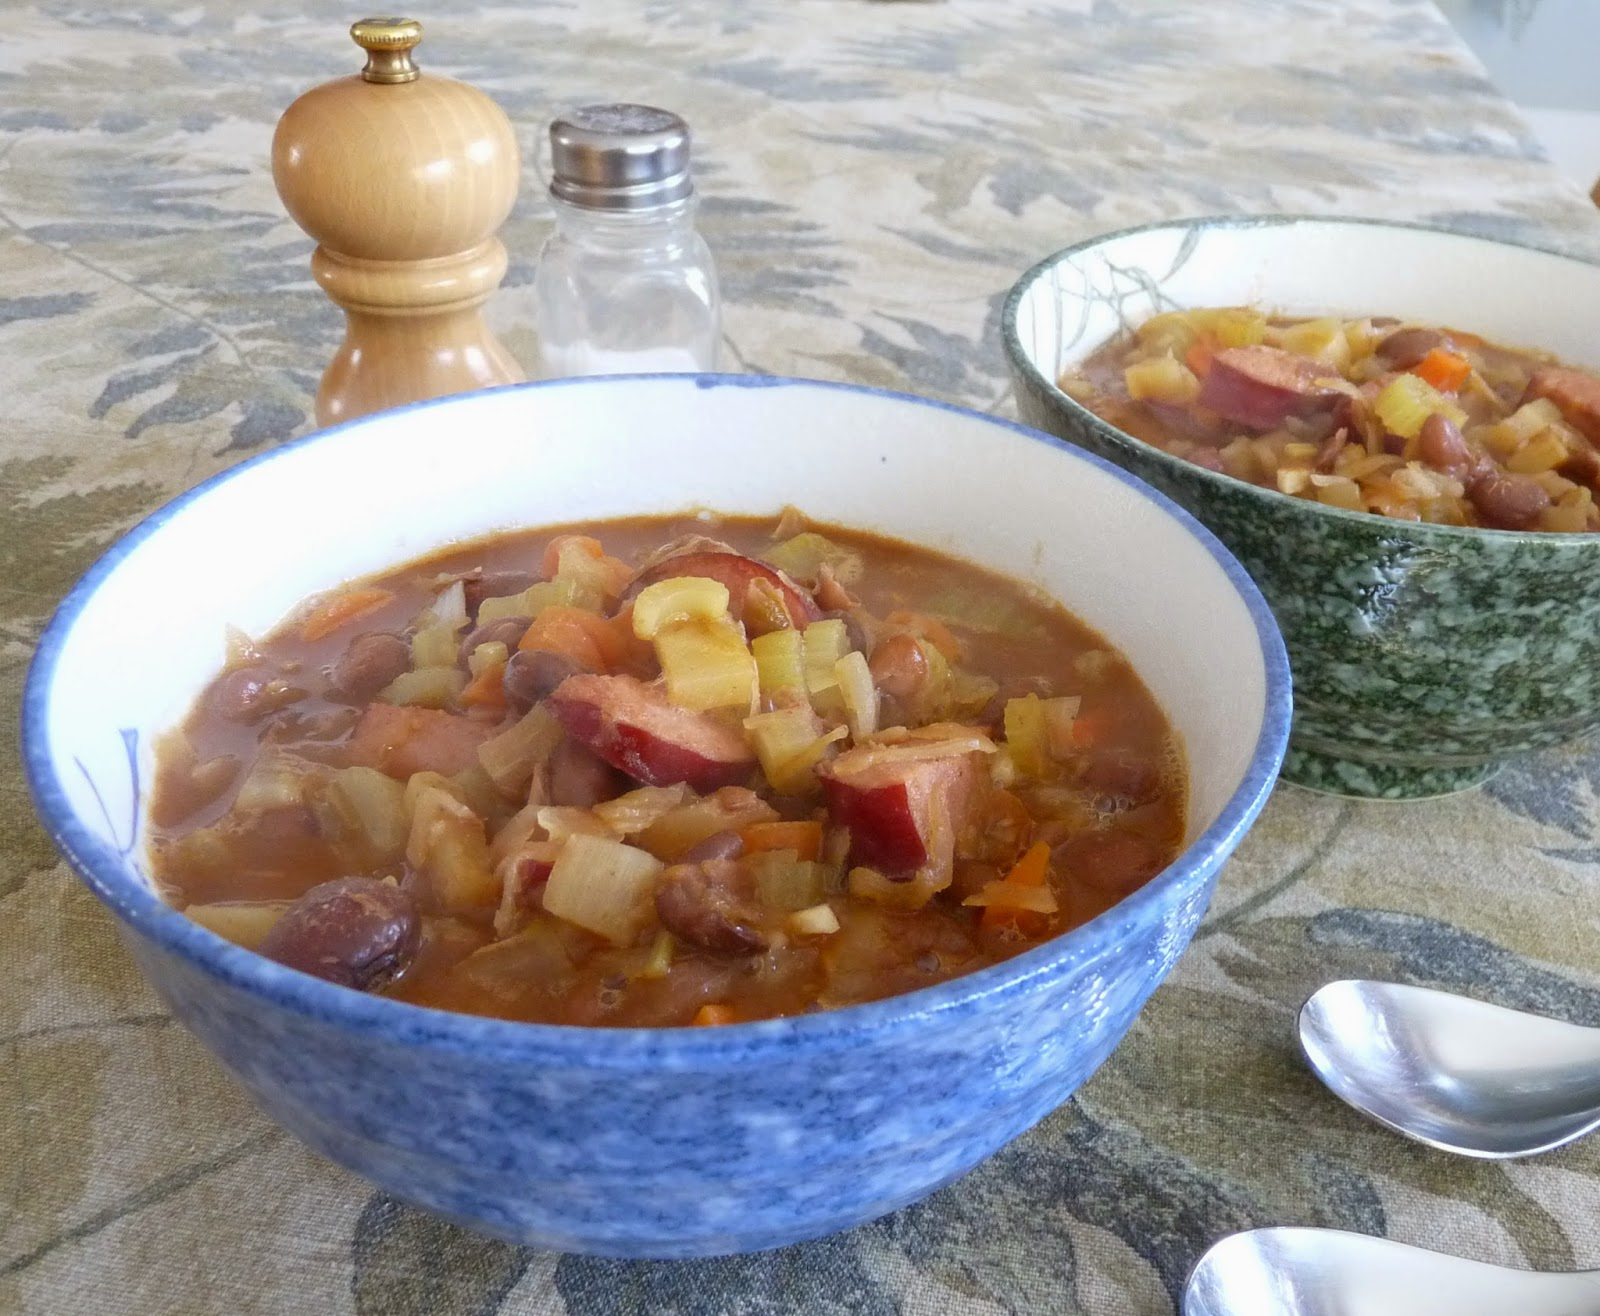 Bableves - Hungarian Bean Soup